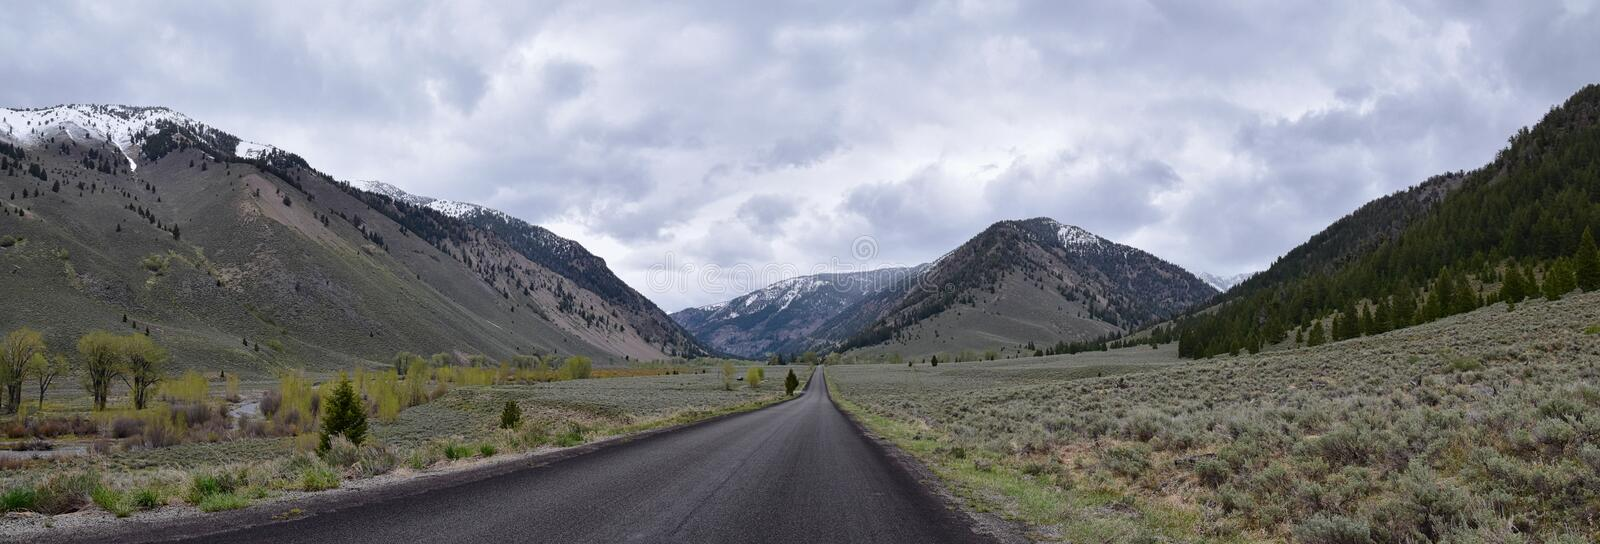 Sun Valley, Badger Canyon in Sawtooth Mountains National Forest Landscape panorama views from Trail Creek Road in Idaho. royalty free stock photos